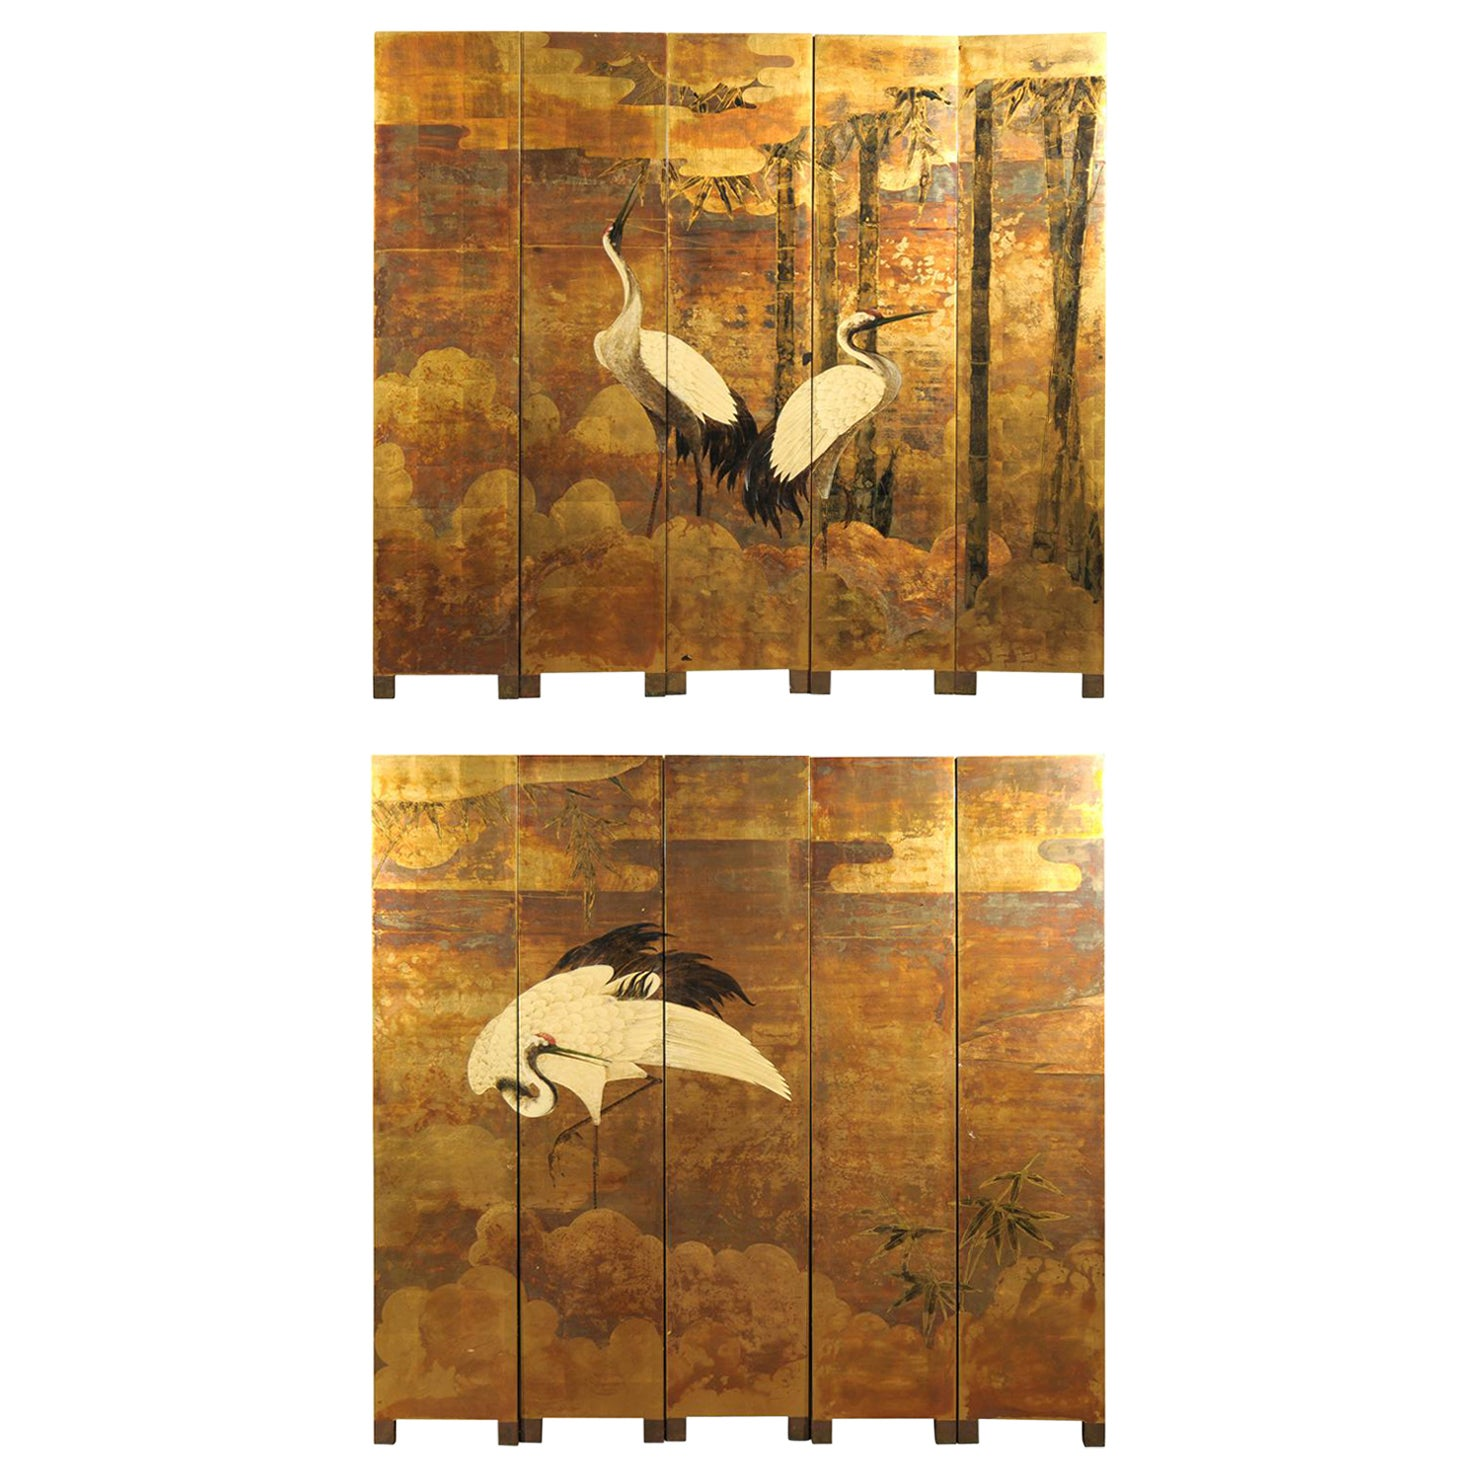 20th Century Oriental 10-Panel Lacquered Screen with Cranes & Bamboo, Gold Tones